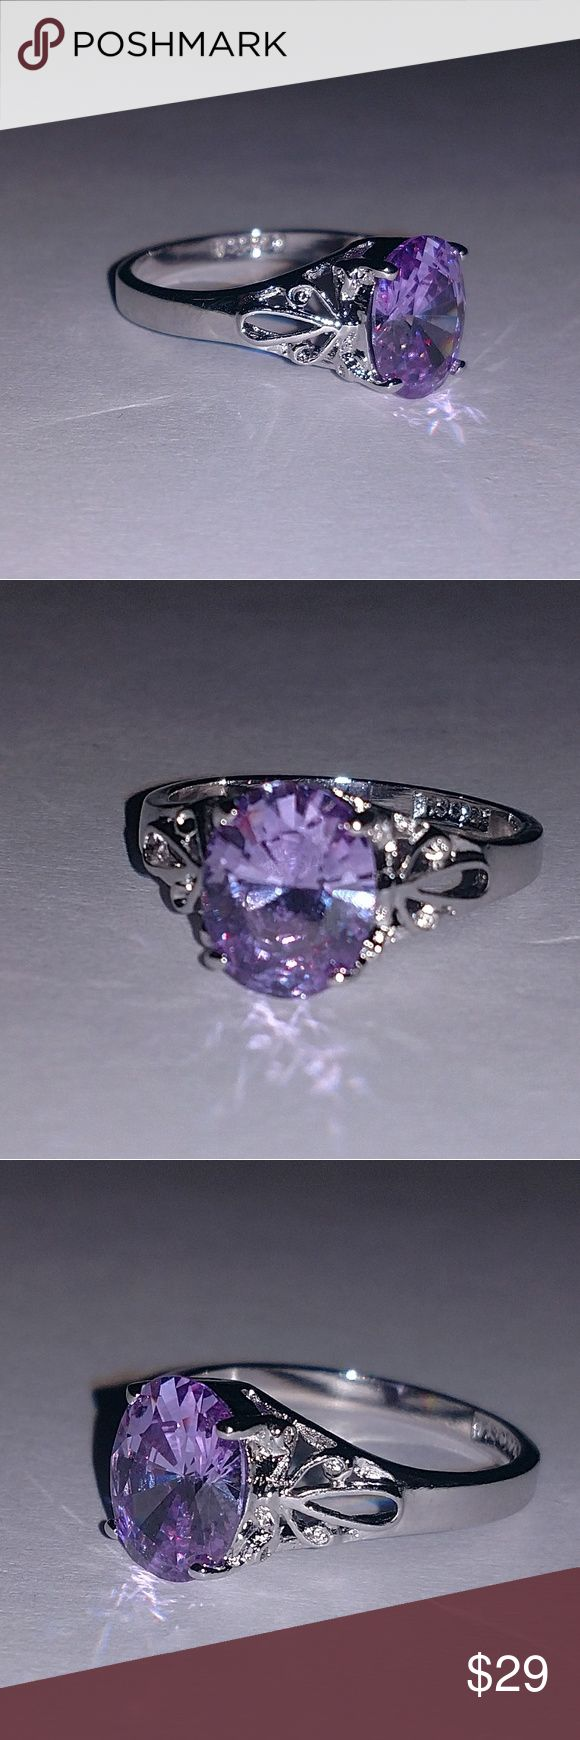 Sterling silver and purple ice ring This is a beautiful sterling silver ring with a stunning purple ice oval stone. It is a size 8.25. It is stamped 925 Jewelry Rings